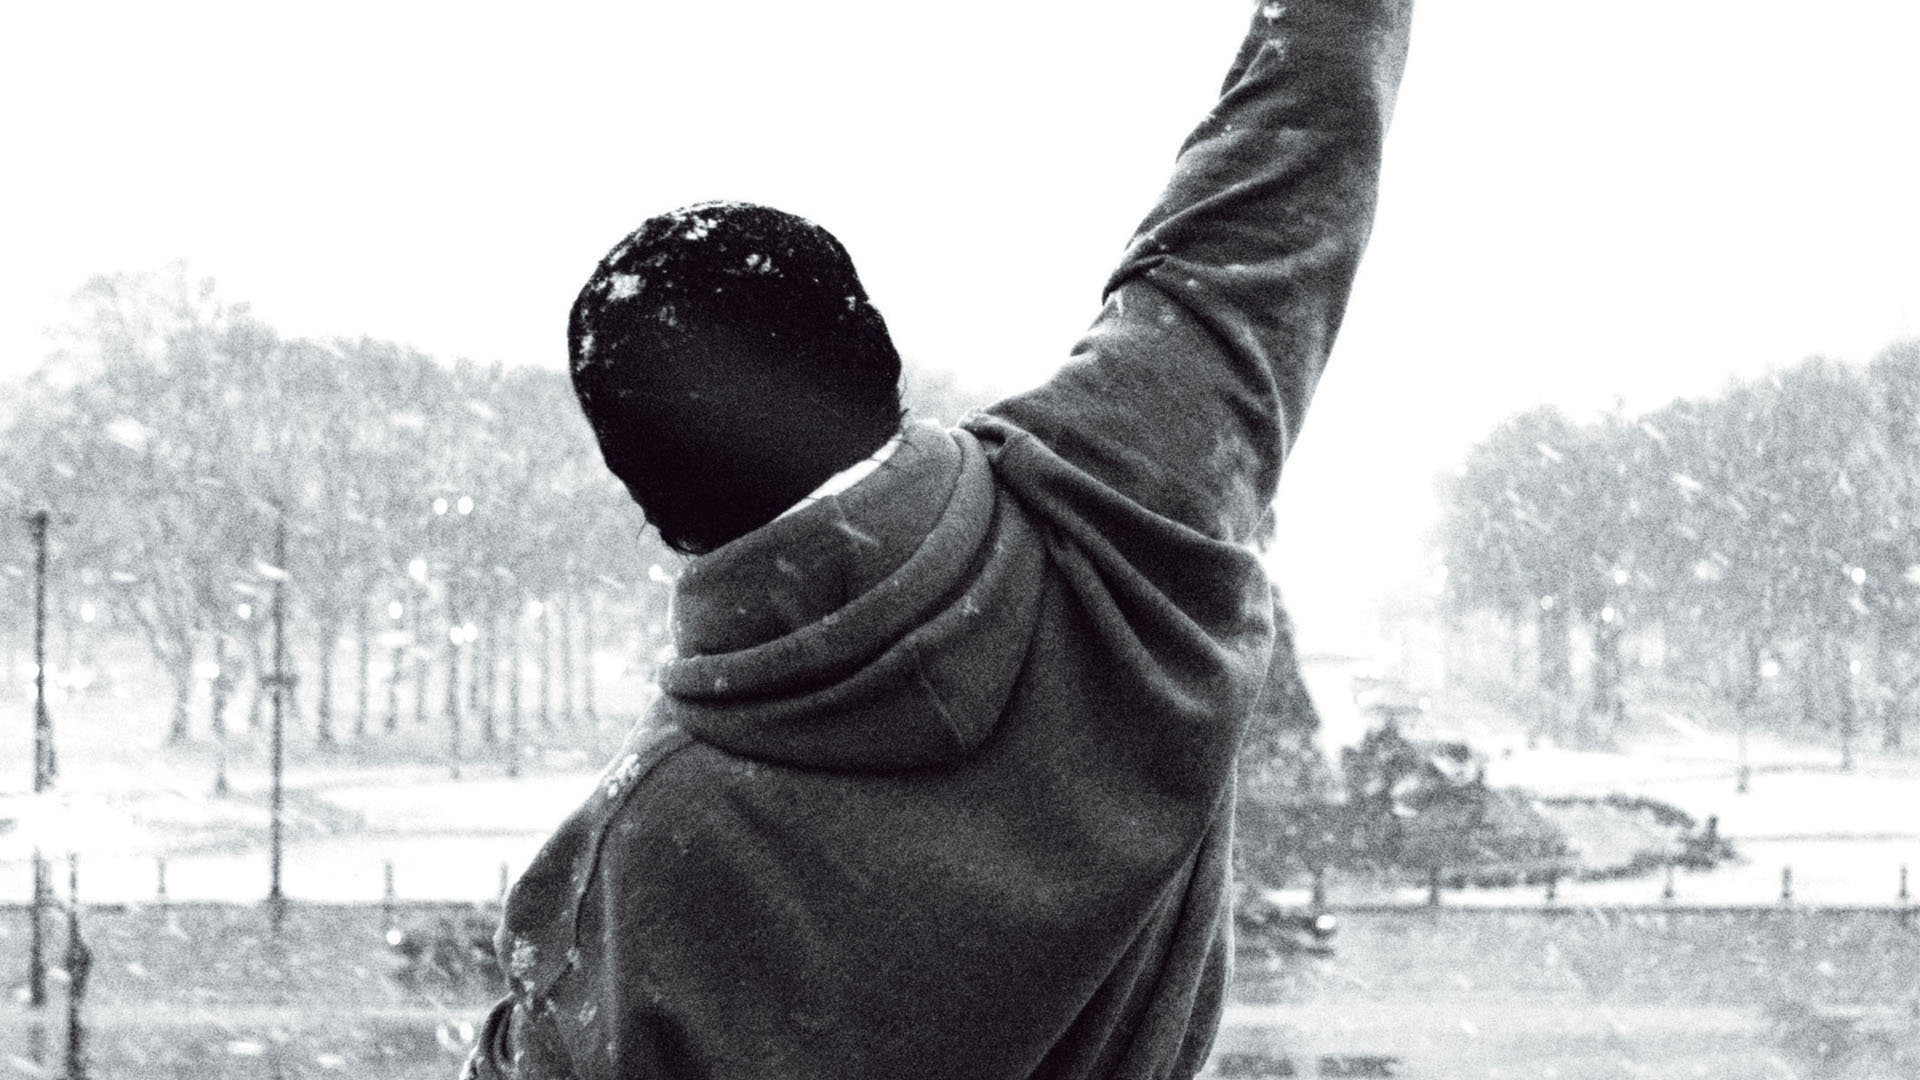 29 Rocky Balboa Images for Laptop   GsFDcY Graphics 1920x1080